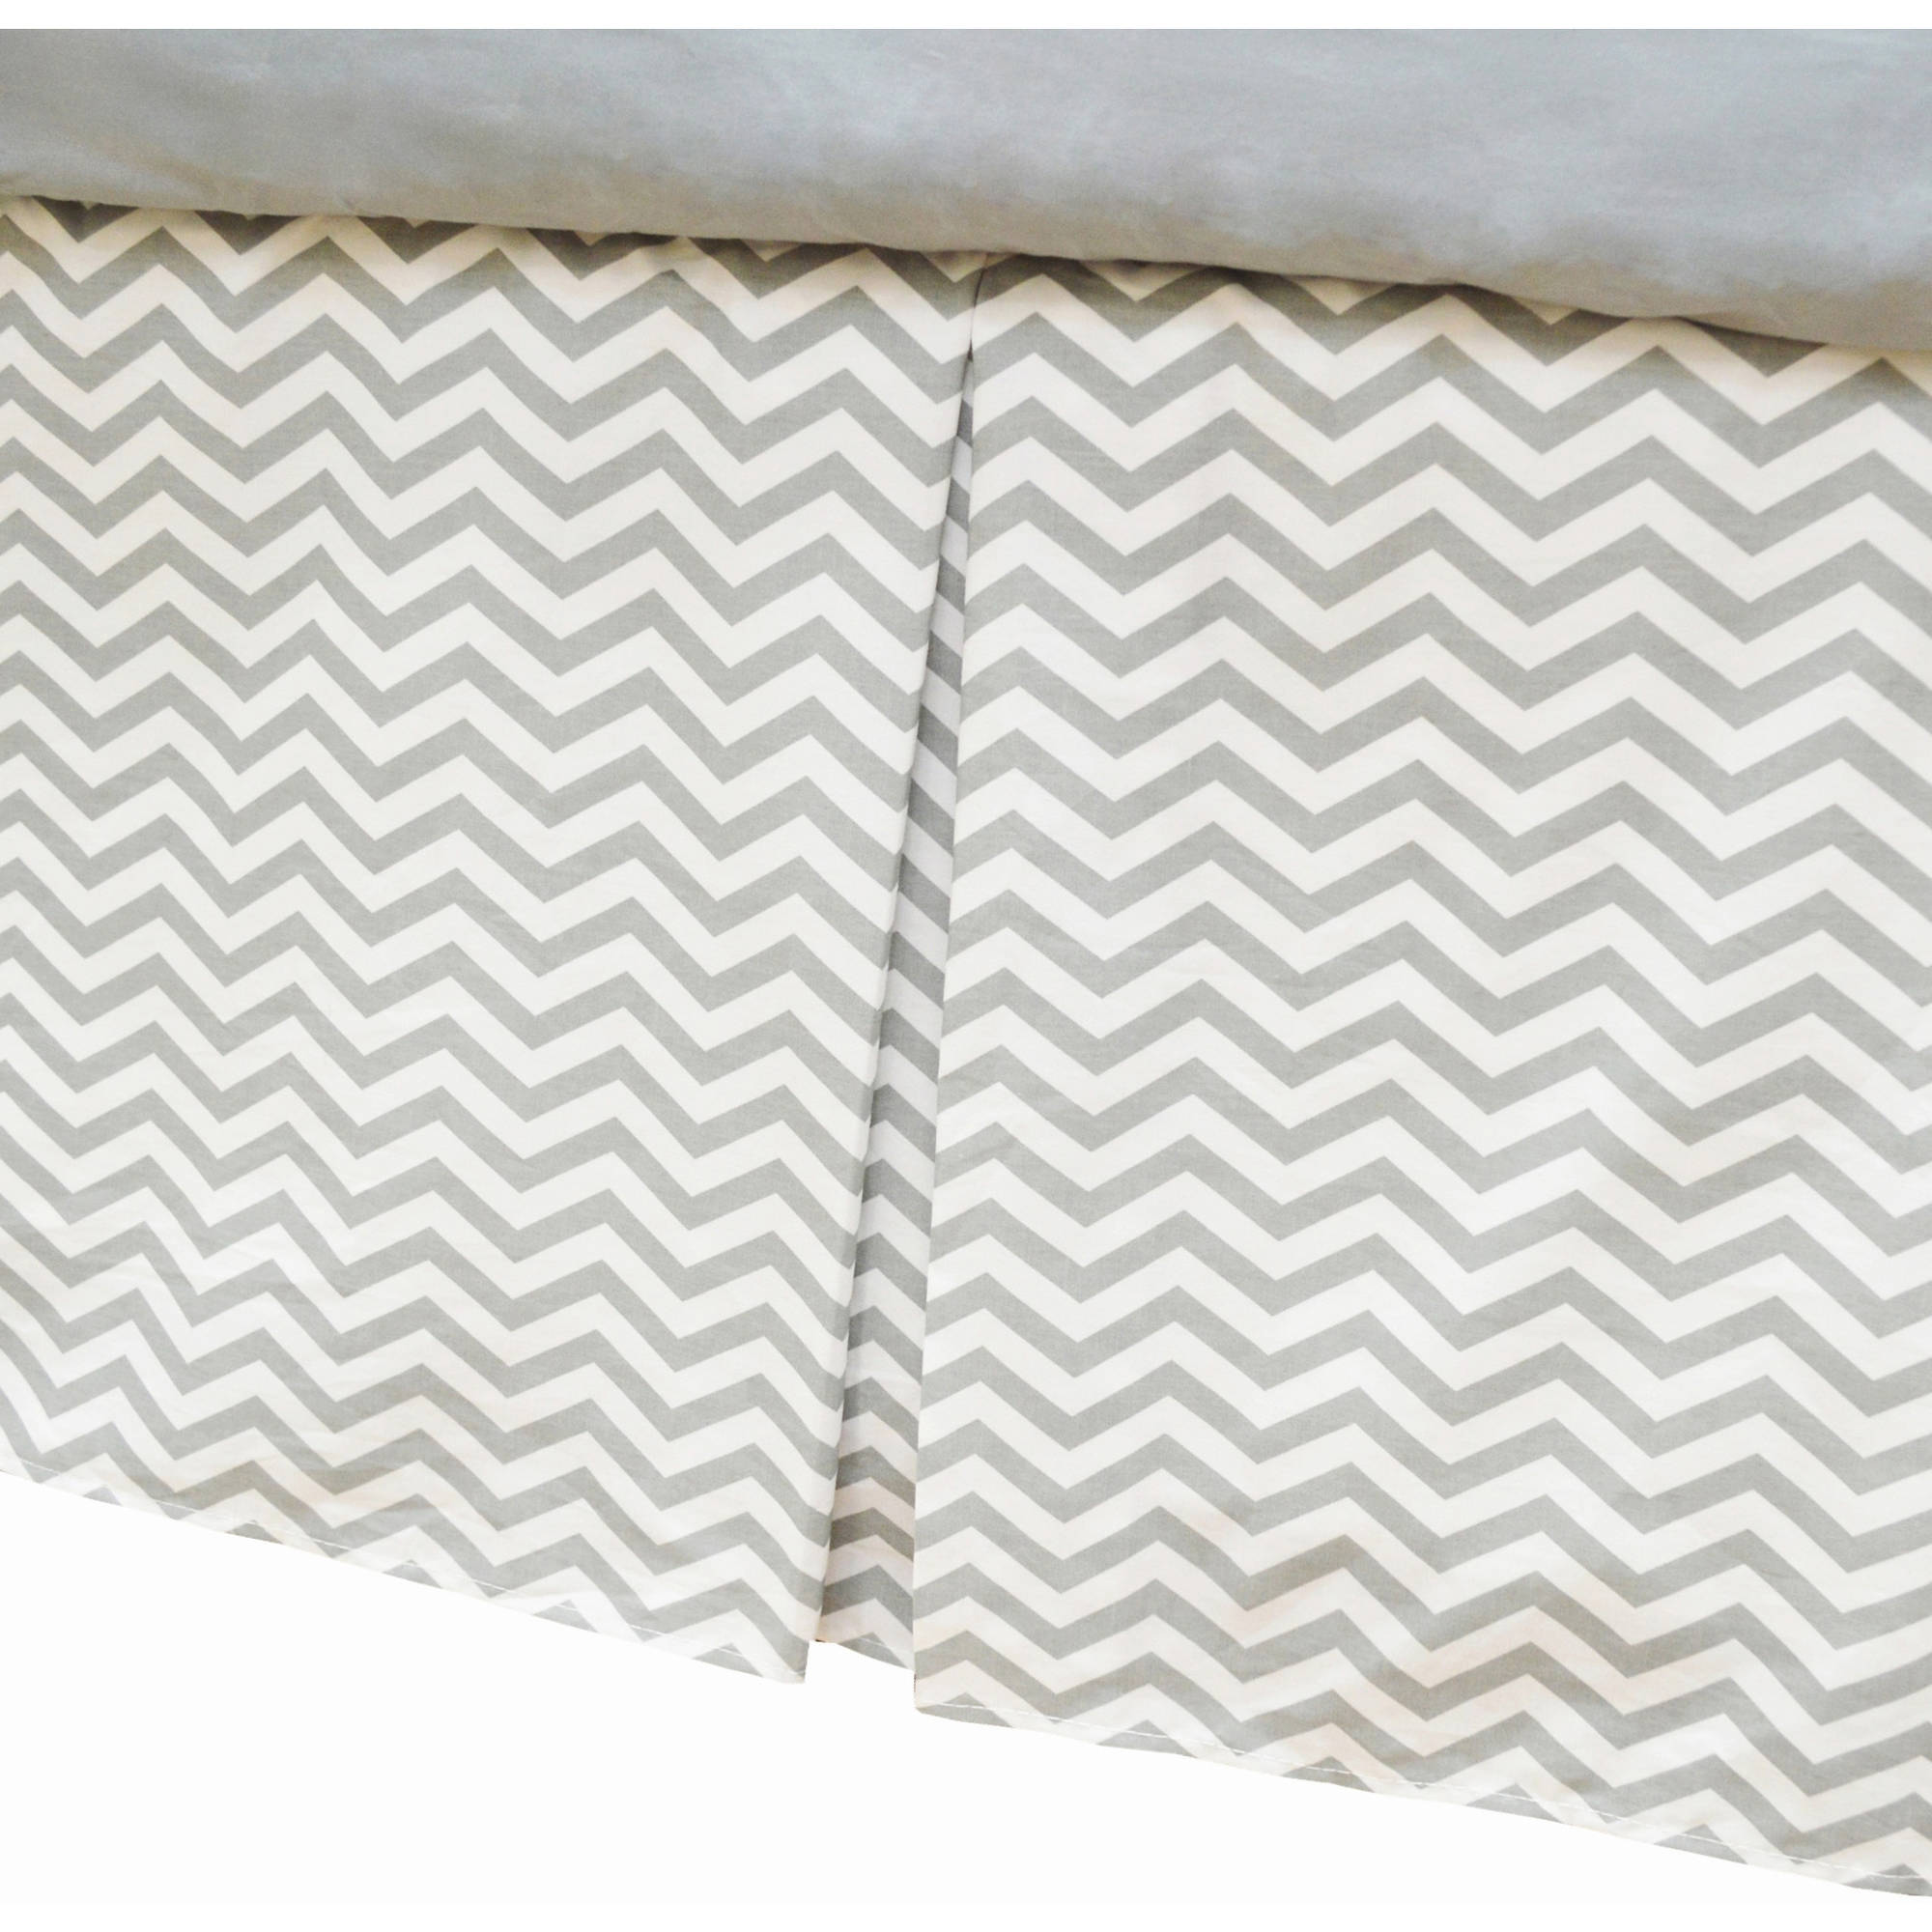 American Baby Company 100 Percent Cotton Tailored Bed Skirt with Pleat